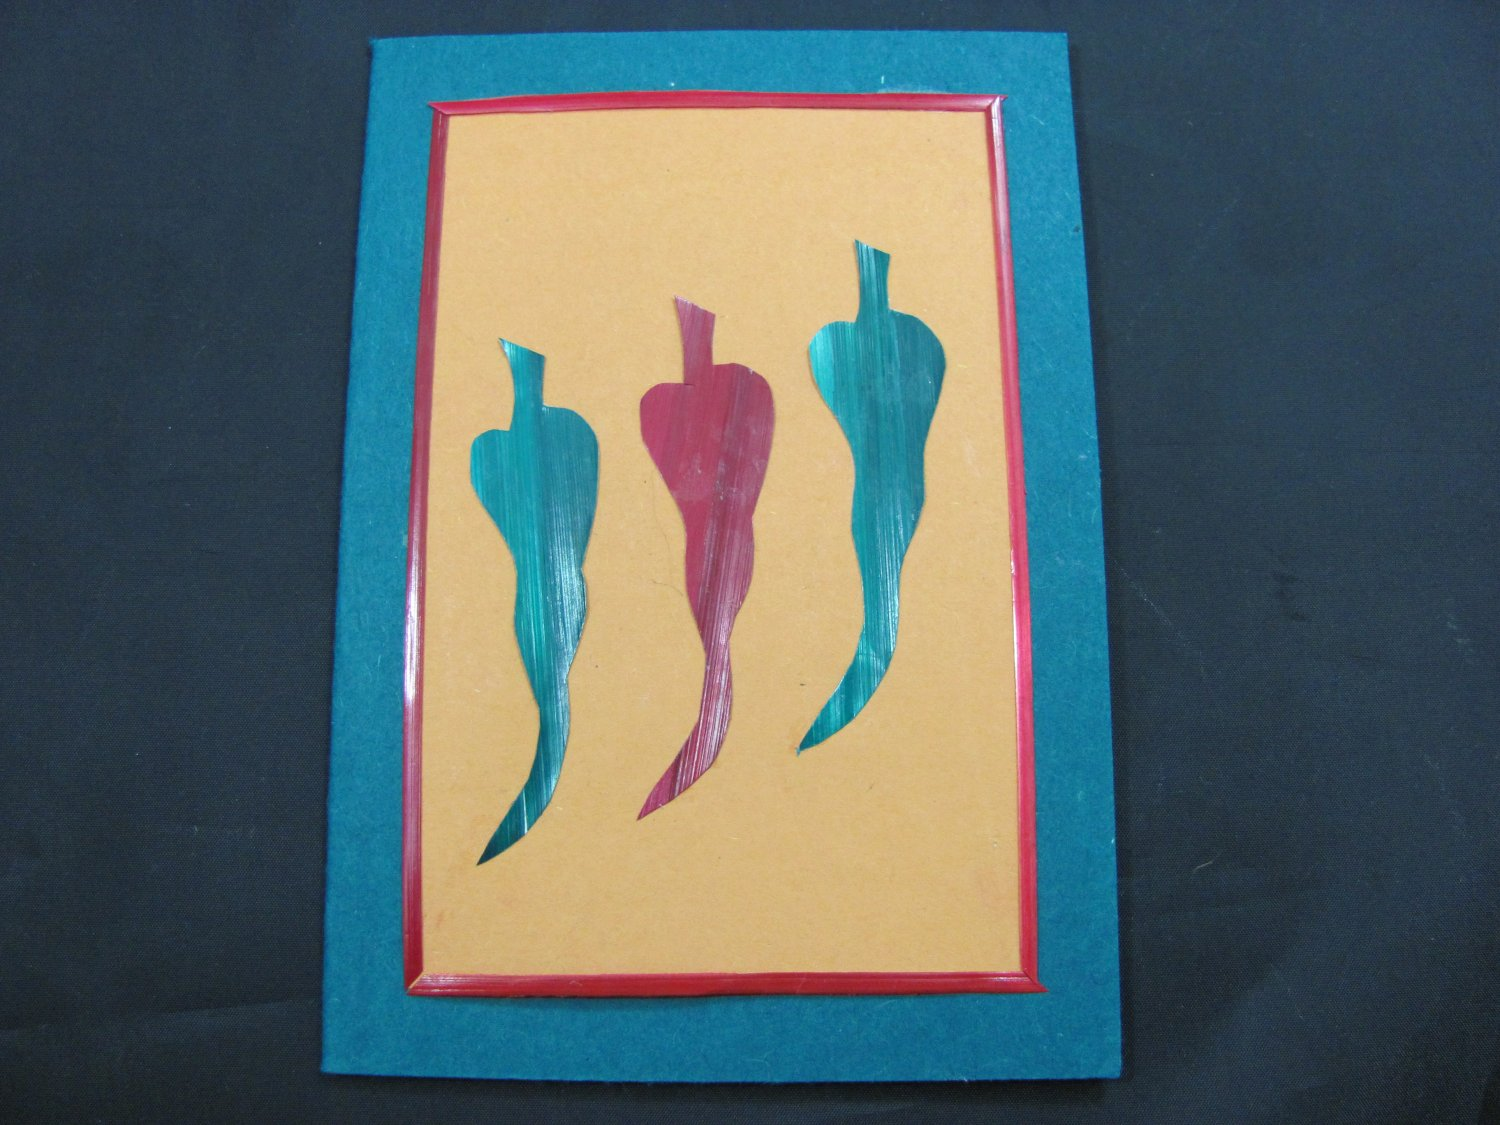 (HOT 01) Wheat Straw Chili Peppers Handmade Greeting Card